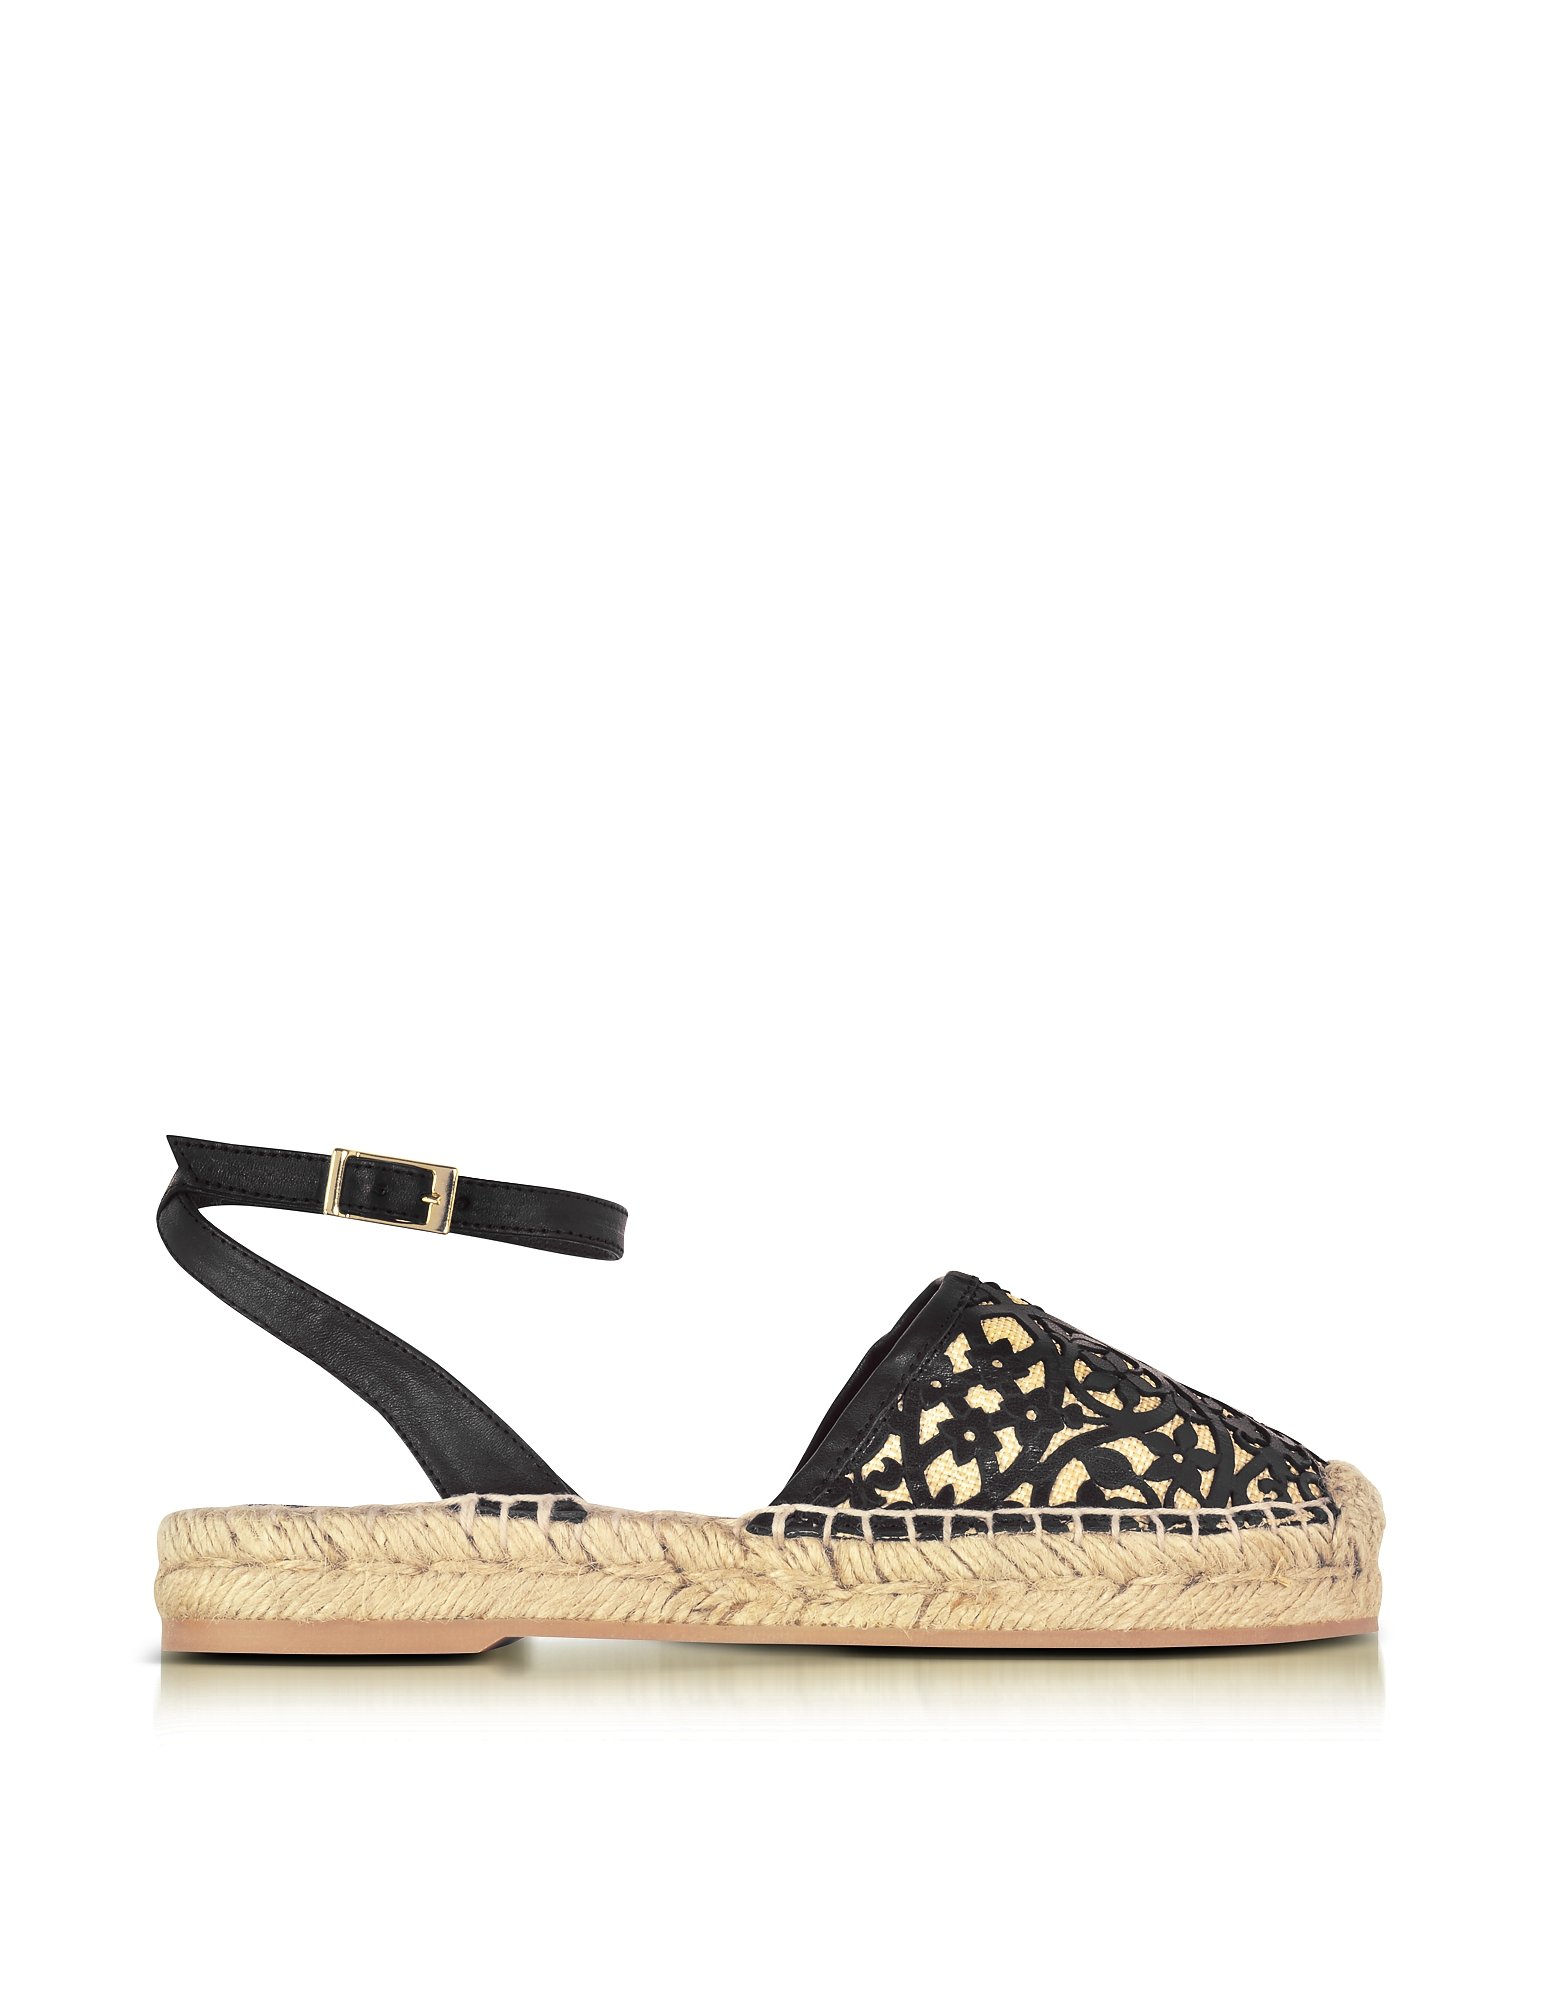 Oscar de la Renta Shoes, Tina Black & Beige Lasercut Leather and Raffia Espadrilles